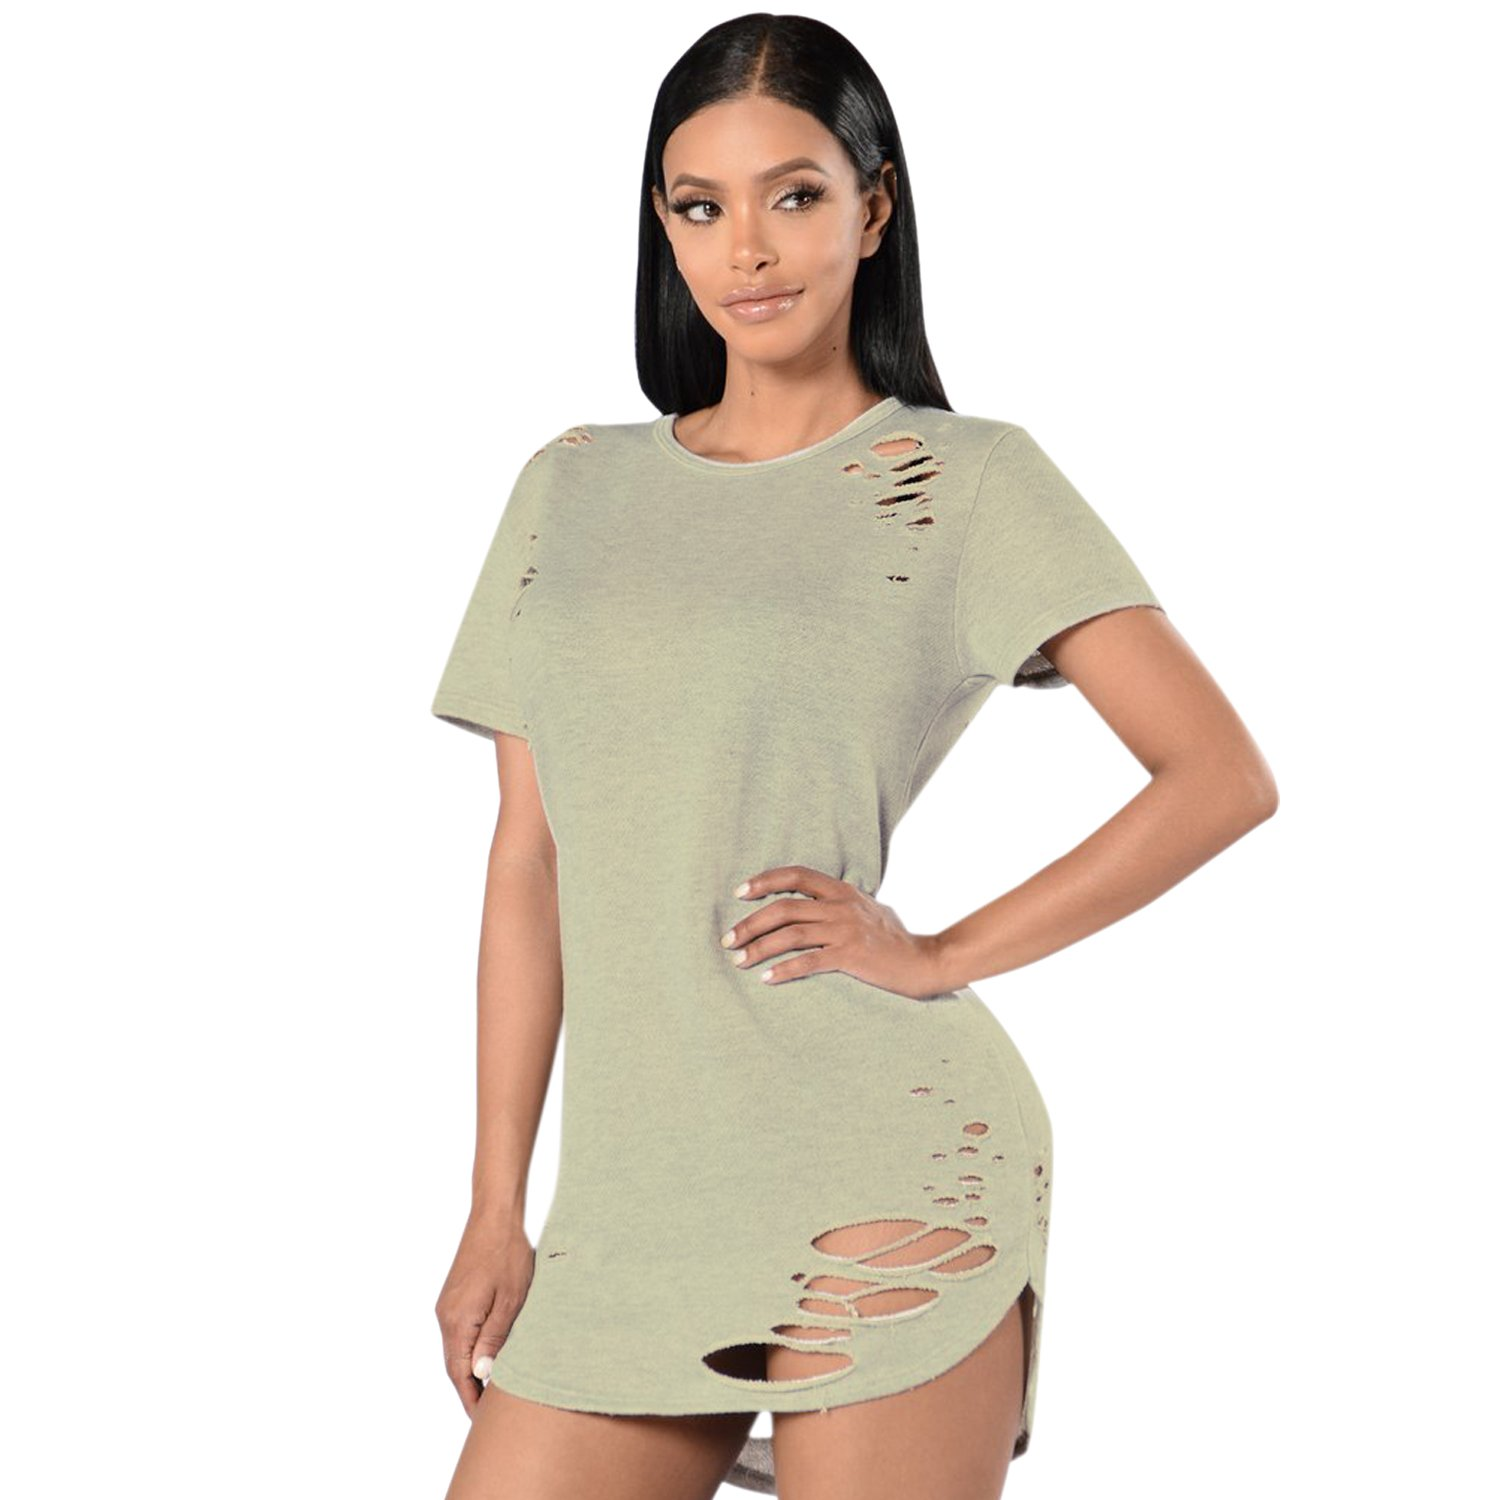 Fashion Story Women's Summer Hollow-out Plain Round Neck Loose T-Shirt